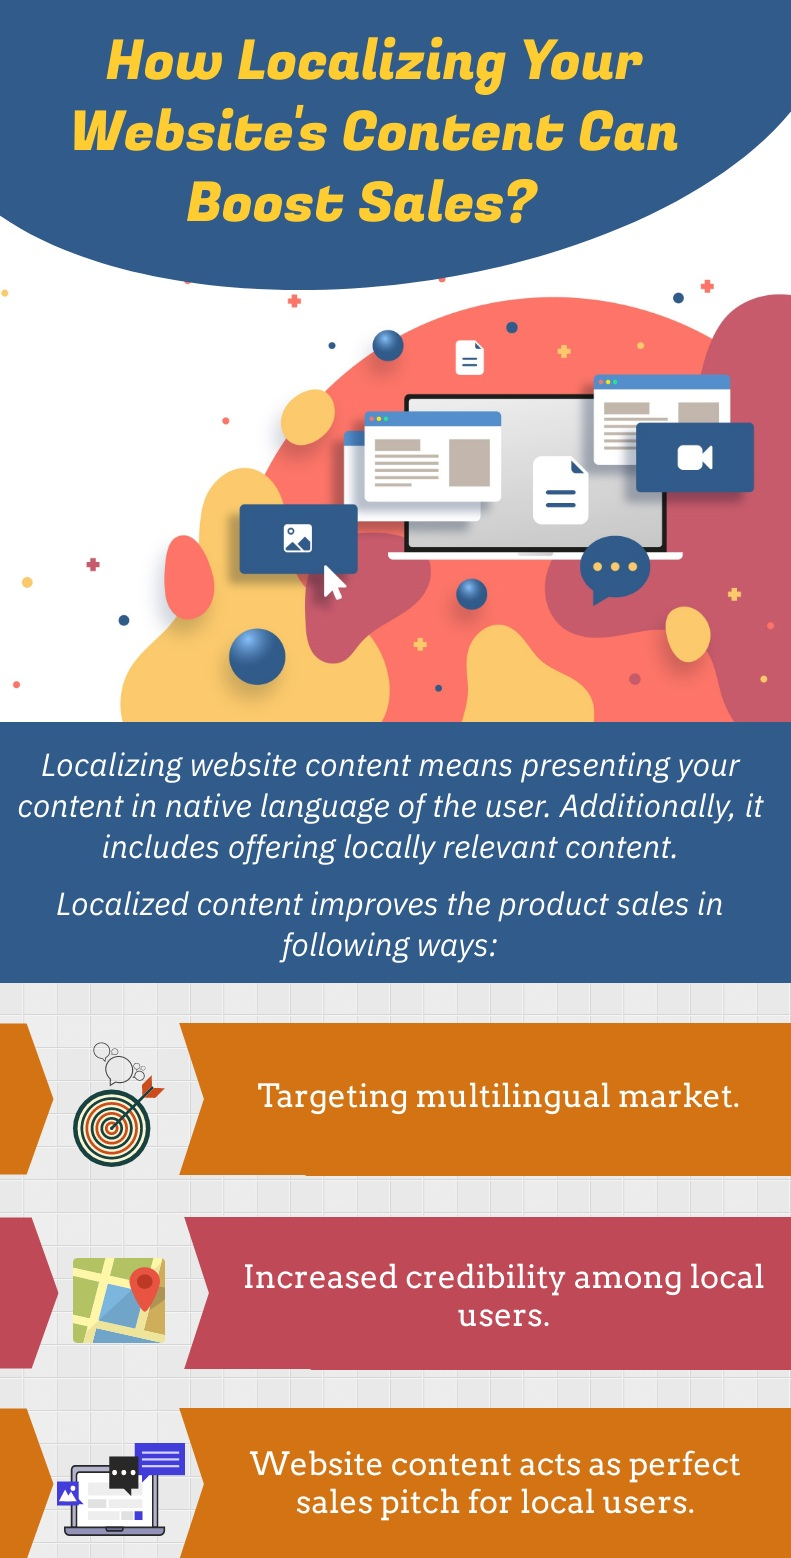 How-Localizing-Your-Websites-Content-Can-Boost-Sales